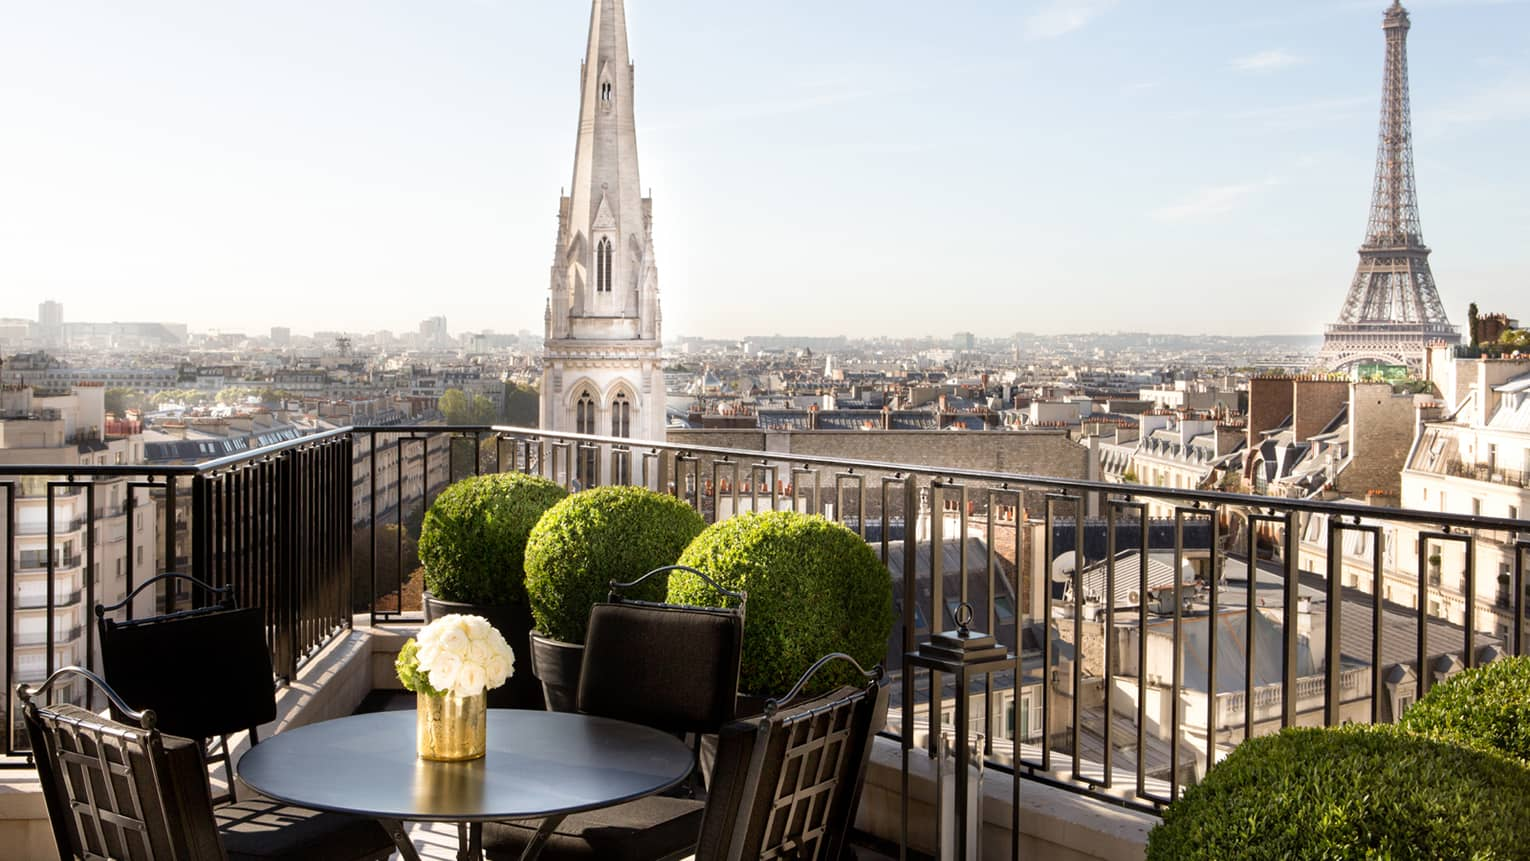 Patio dining table with white roses, potted shrubs iron balcony overlooking Paris rooftops, cathedrals